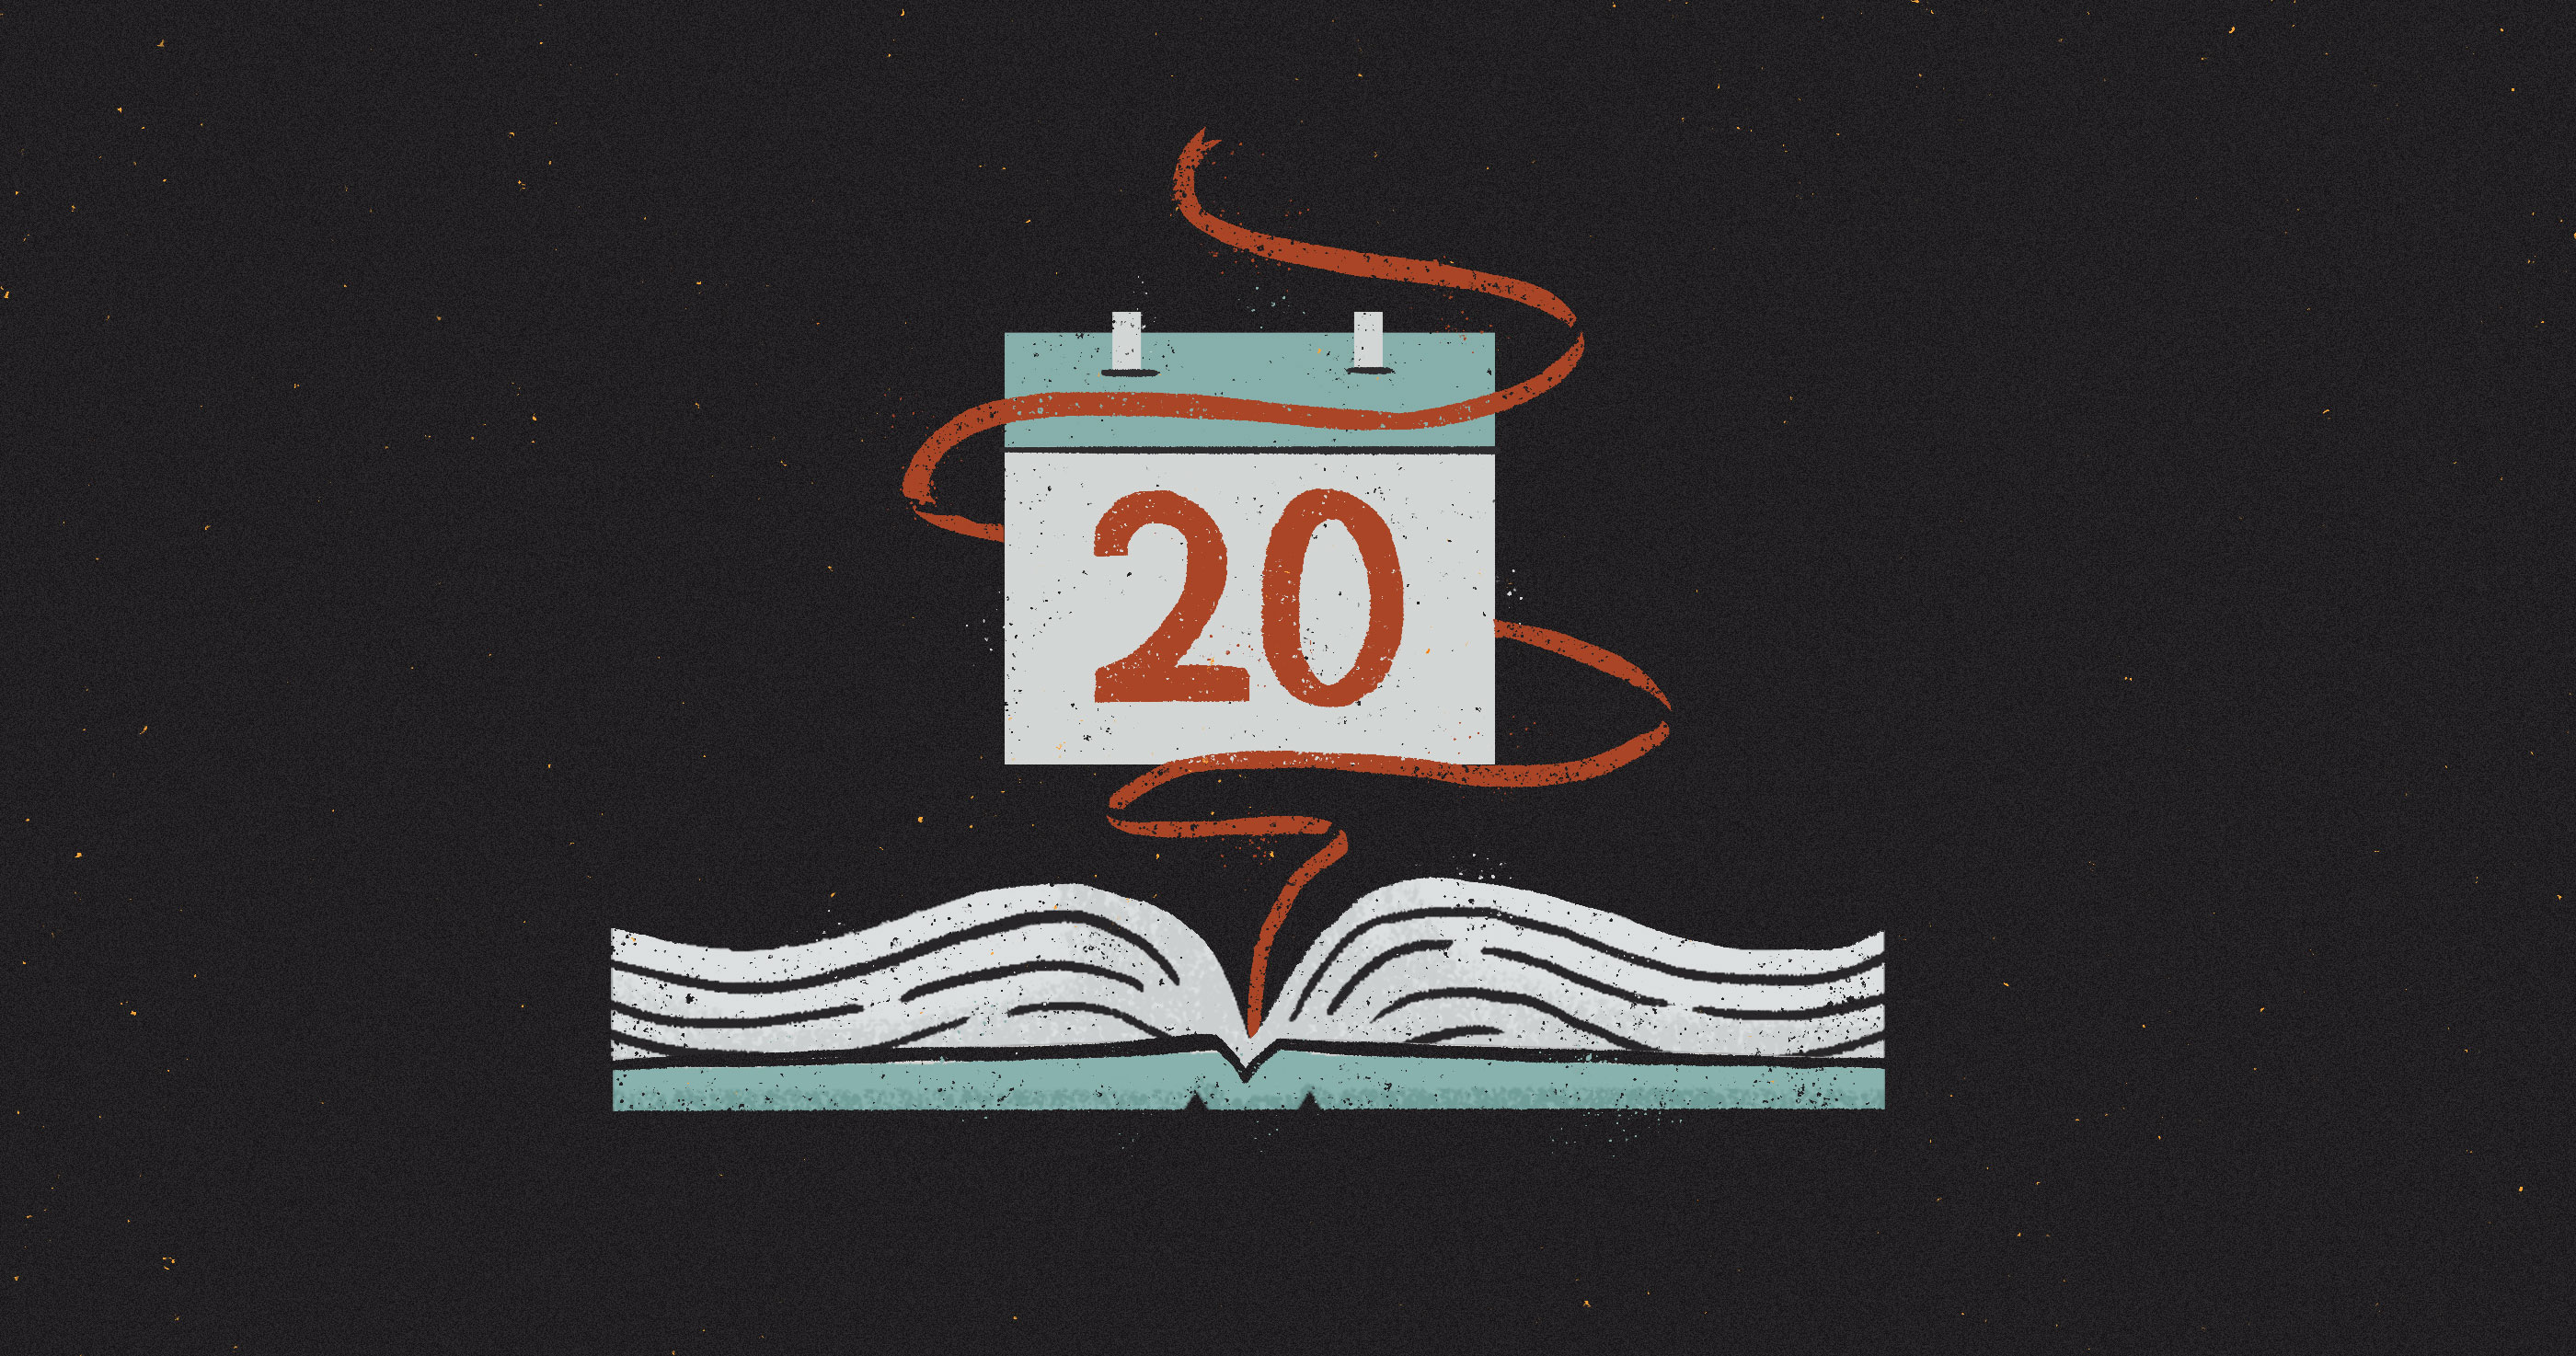 Through the Bible in 20 Days